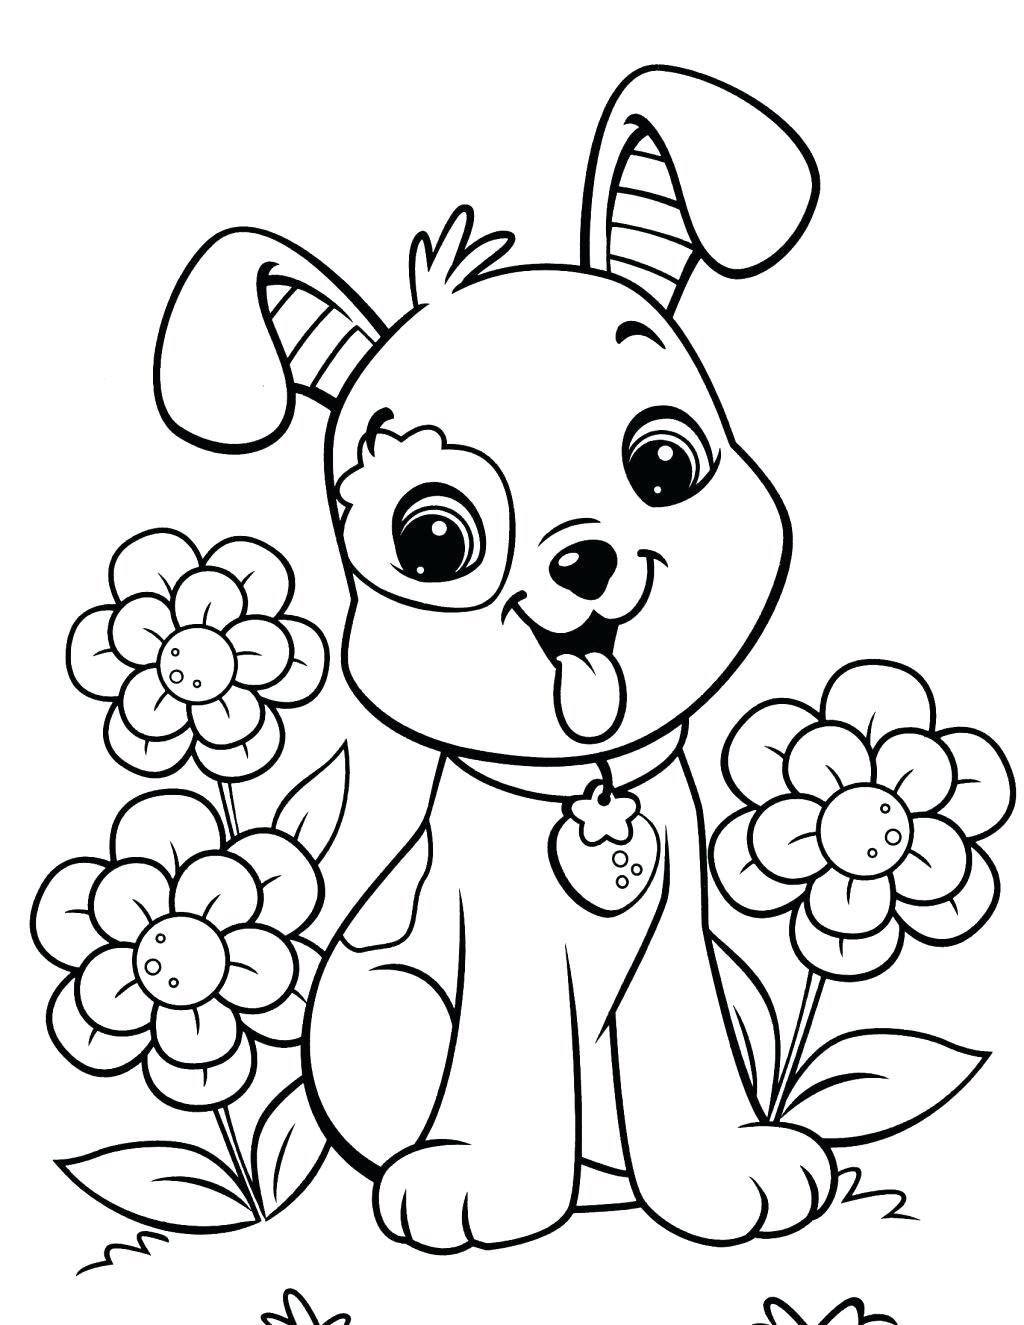 Cute Dogs Coloring Pages Ndash Sandboxpaperco Puppy Coloring Pages Dog Coloring Page Easy Coloring Pages